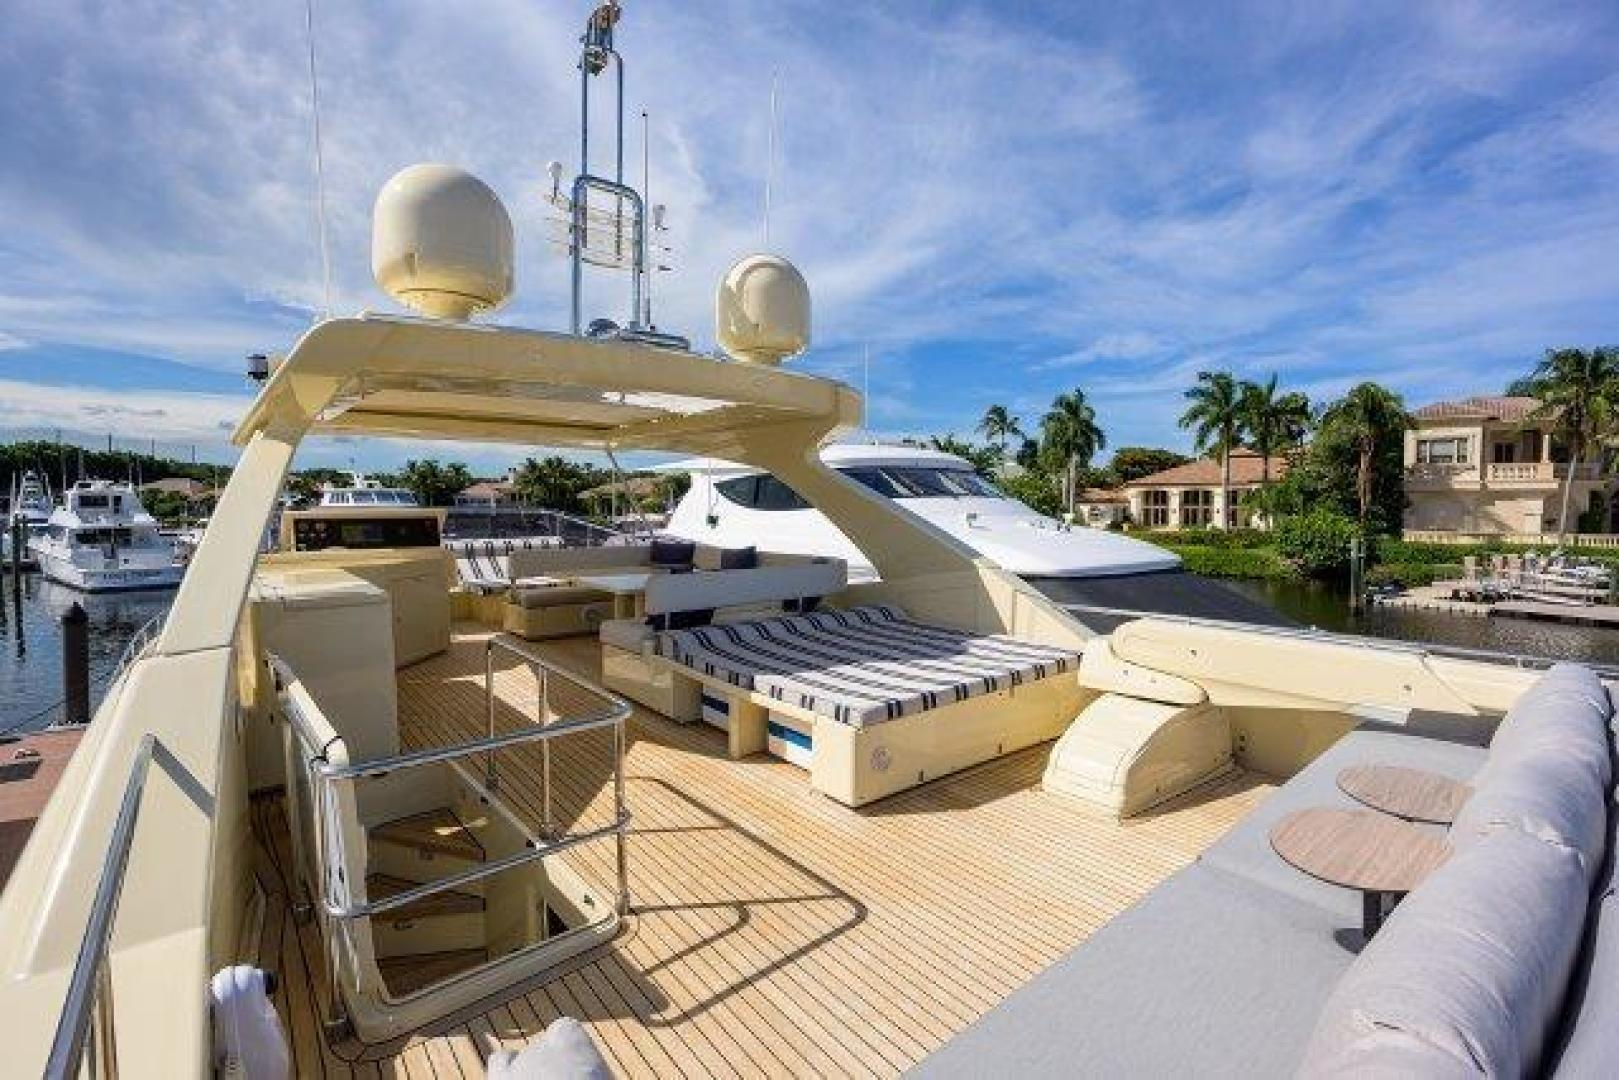 Ferretti Yachts-Altura 840 2010-MISS ALLIED Jupiter-Florida-United States-Bridge Deck-1518342 | Thumbnail